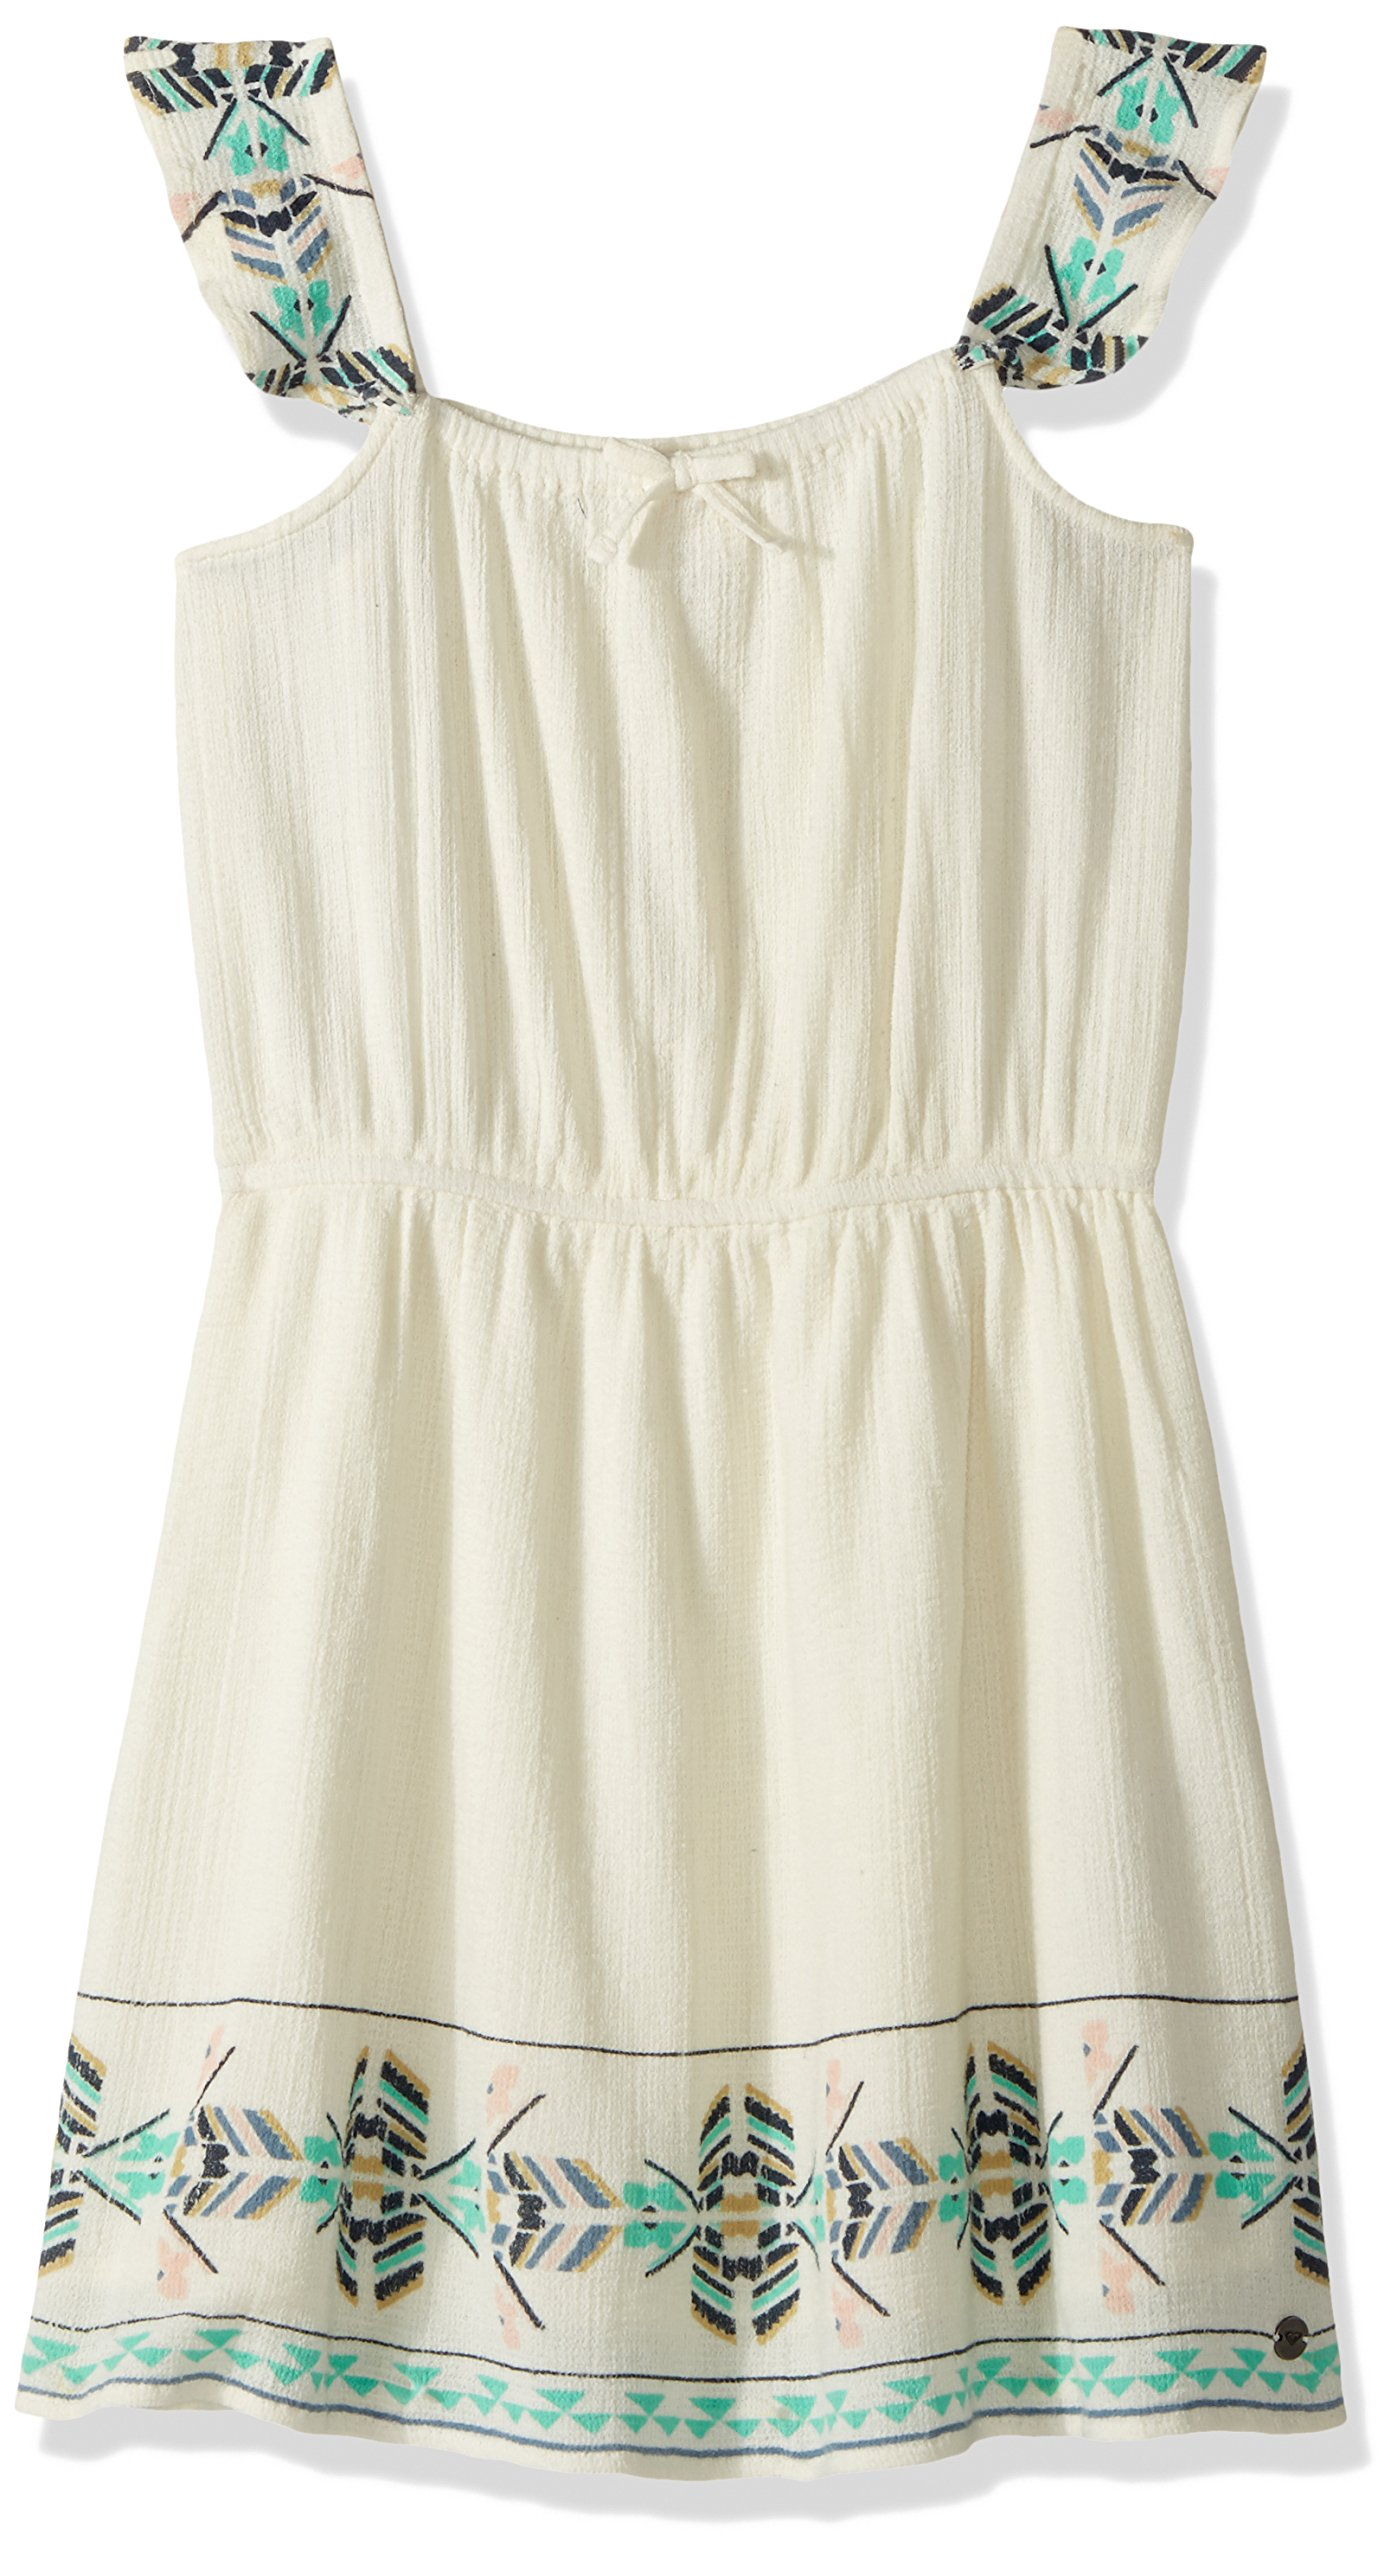 ROXY Girls' Big High Lines Flyes Woven Dress, Marshmallow, 8 by ROXY